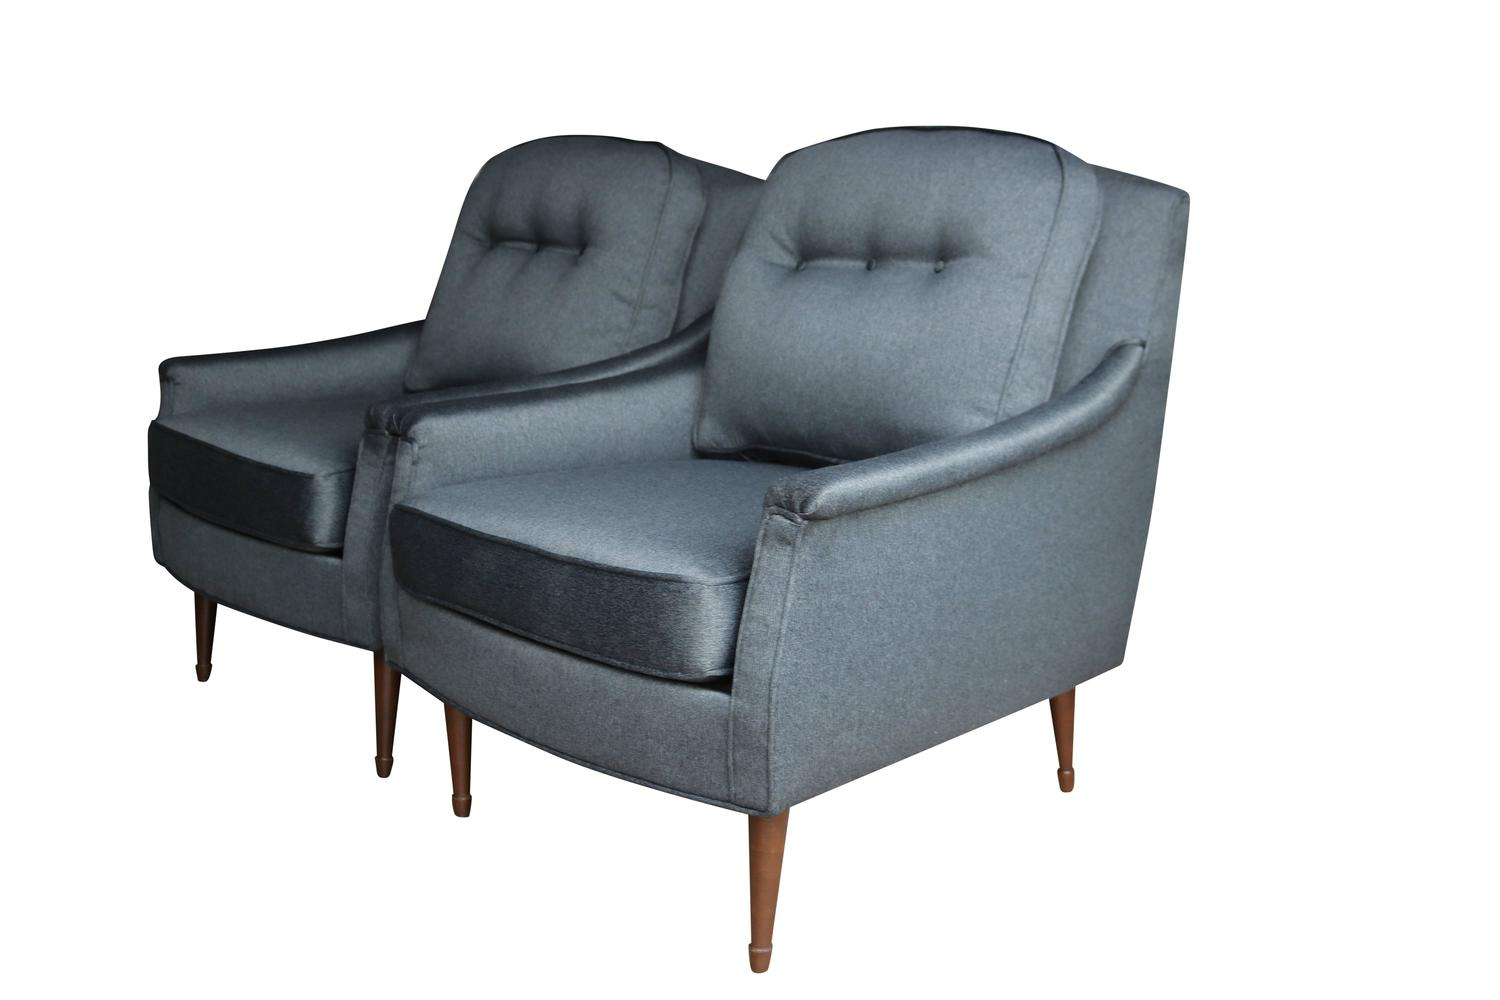 Pair of grey mid century modern armchairs at 1stdibs for Mid century modern armchairs